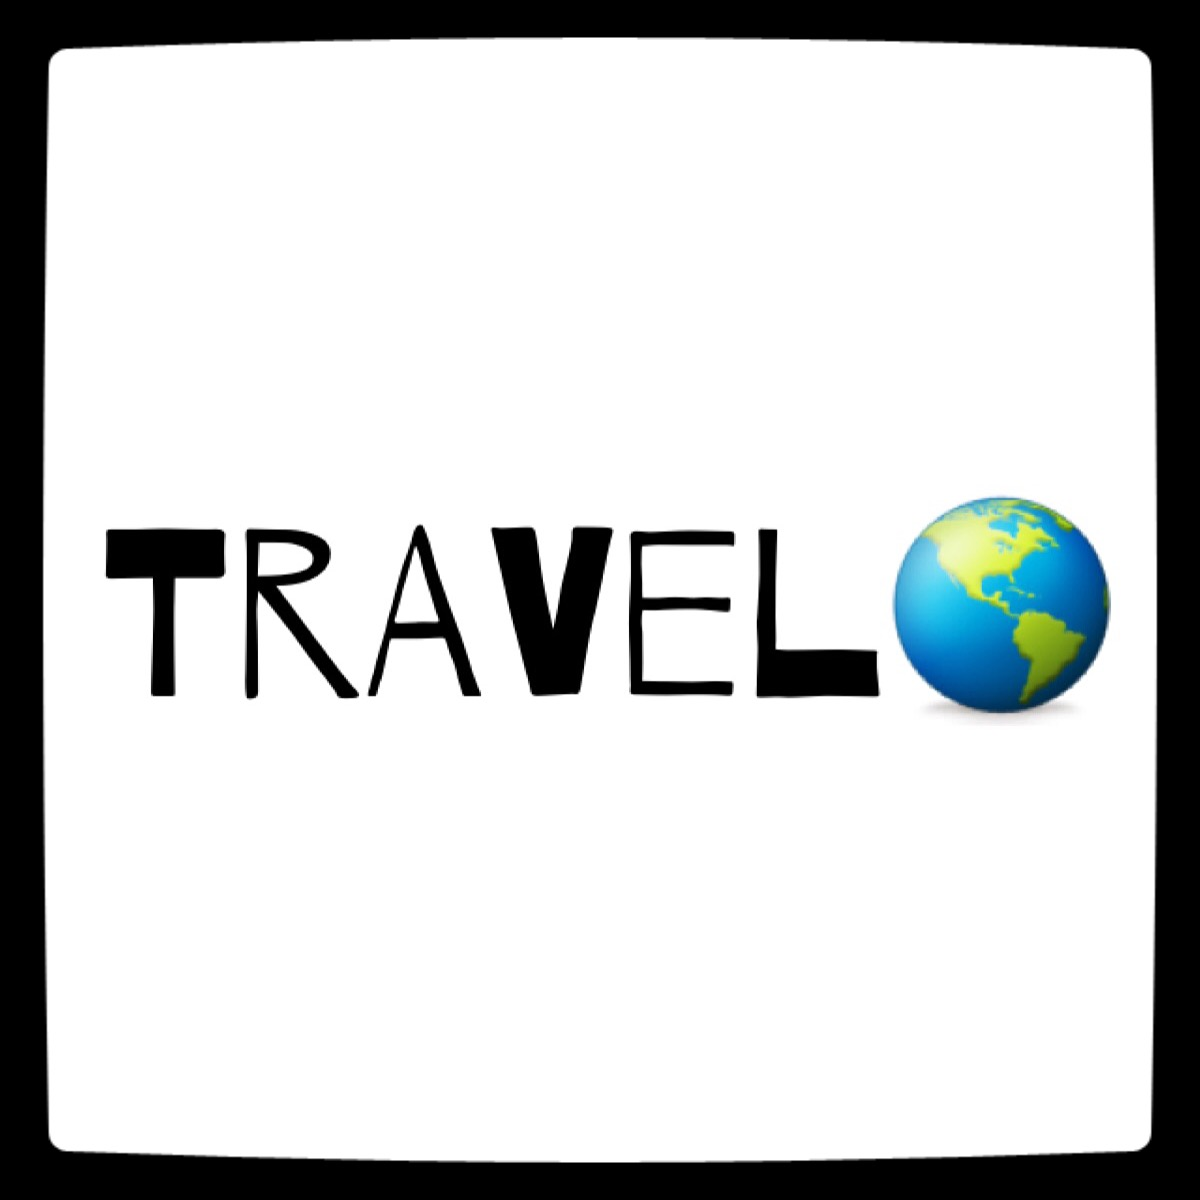 travel website button.JPG